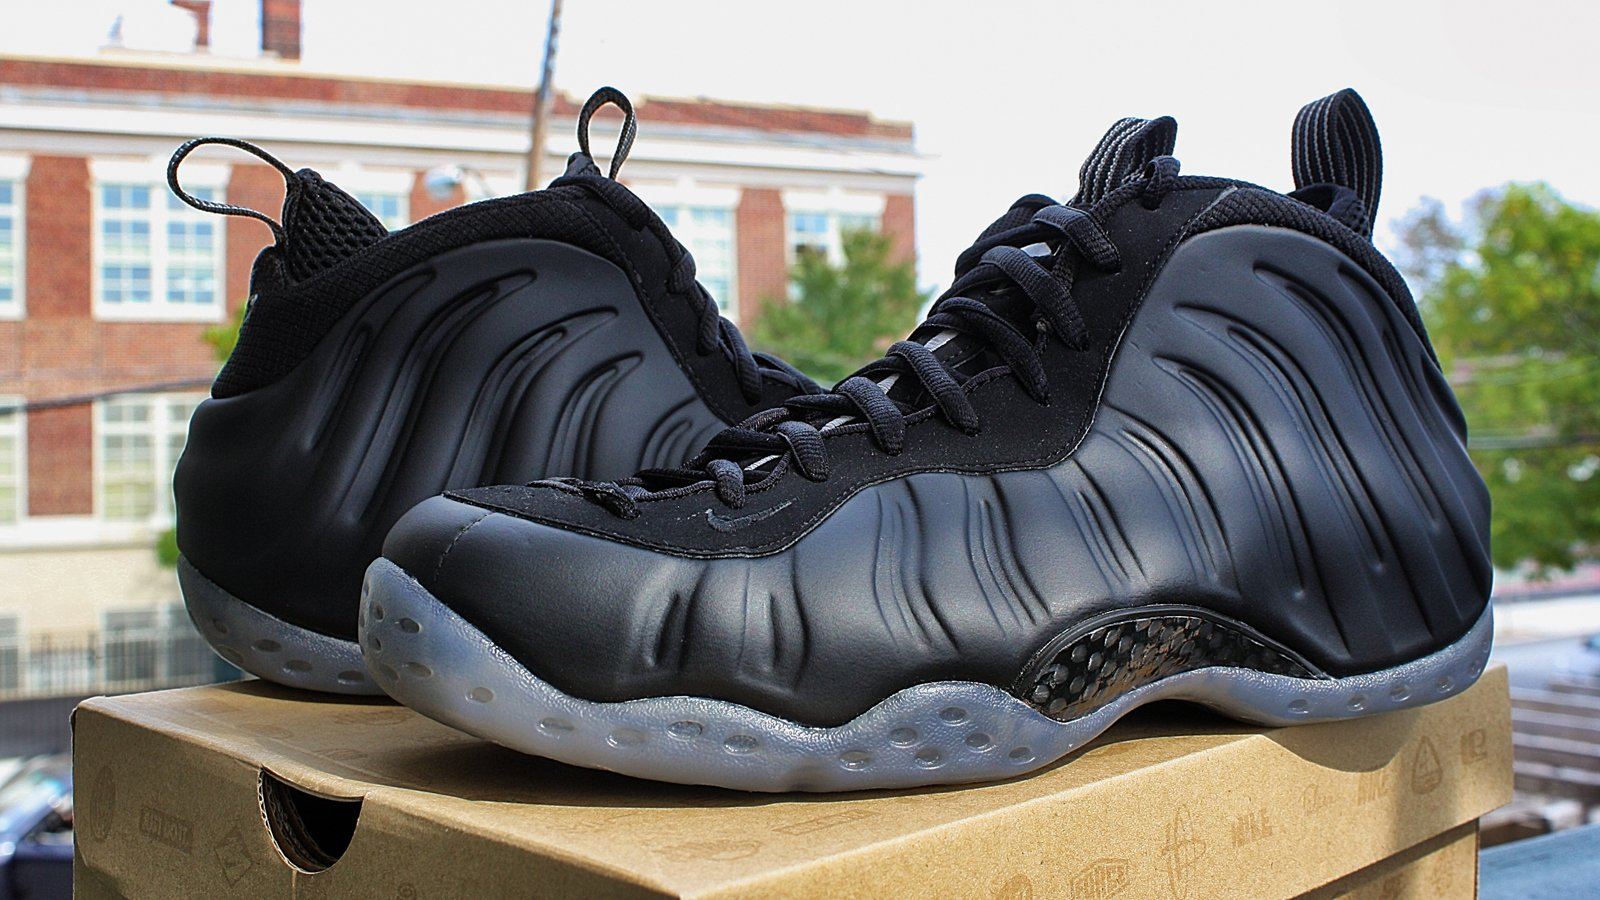 Nike Air Foamposite One 'Stealth' - Another Look